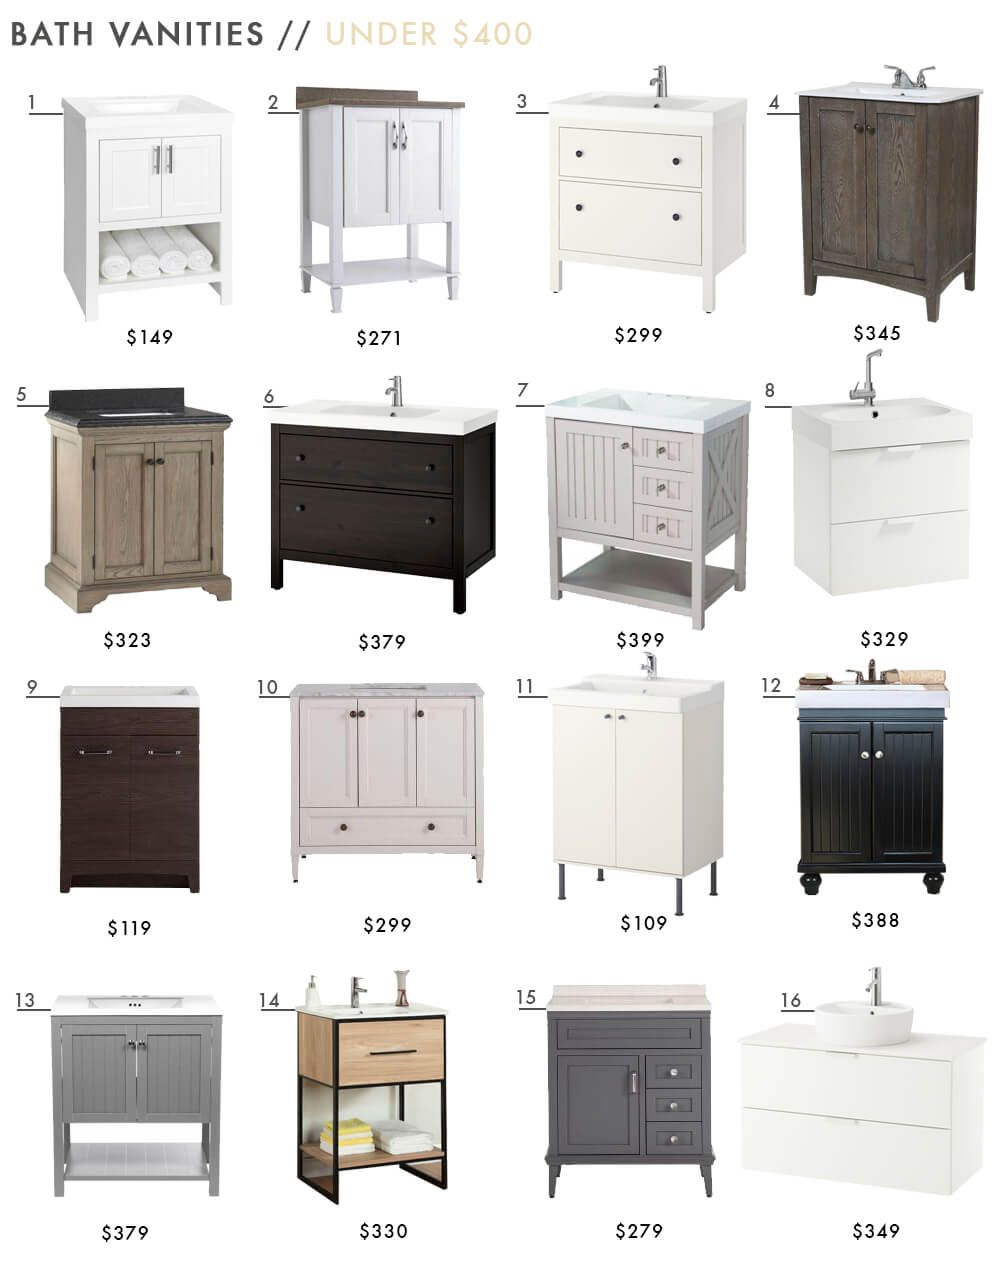 68 Readymade Bath Vanities Emily Henderson Bathrooms Remodel Budget Bathroom Remodel Bathroom Design